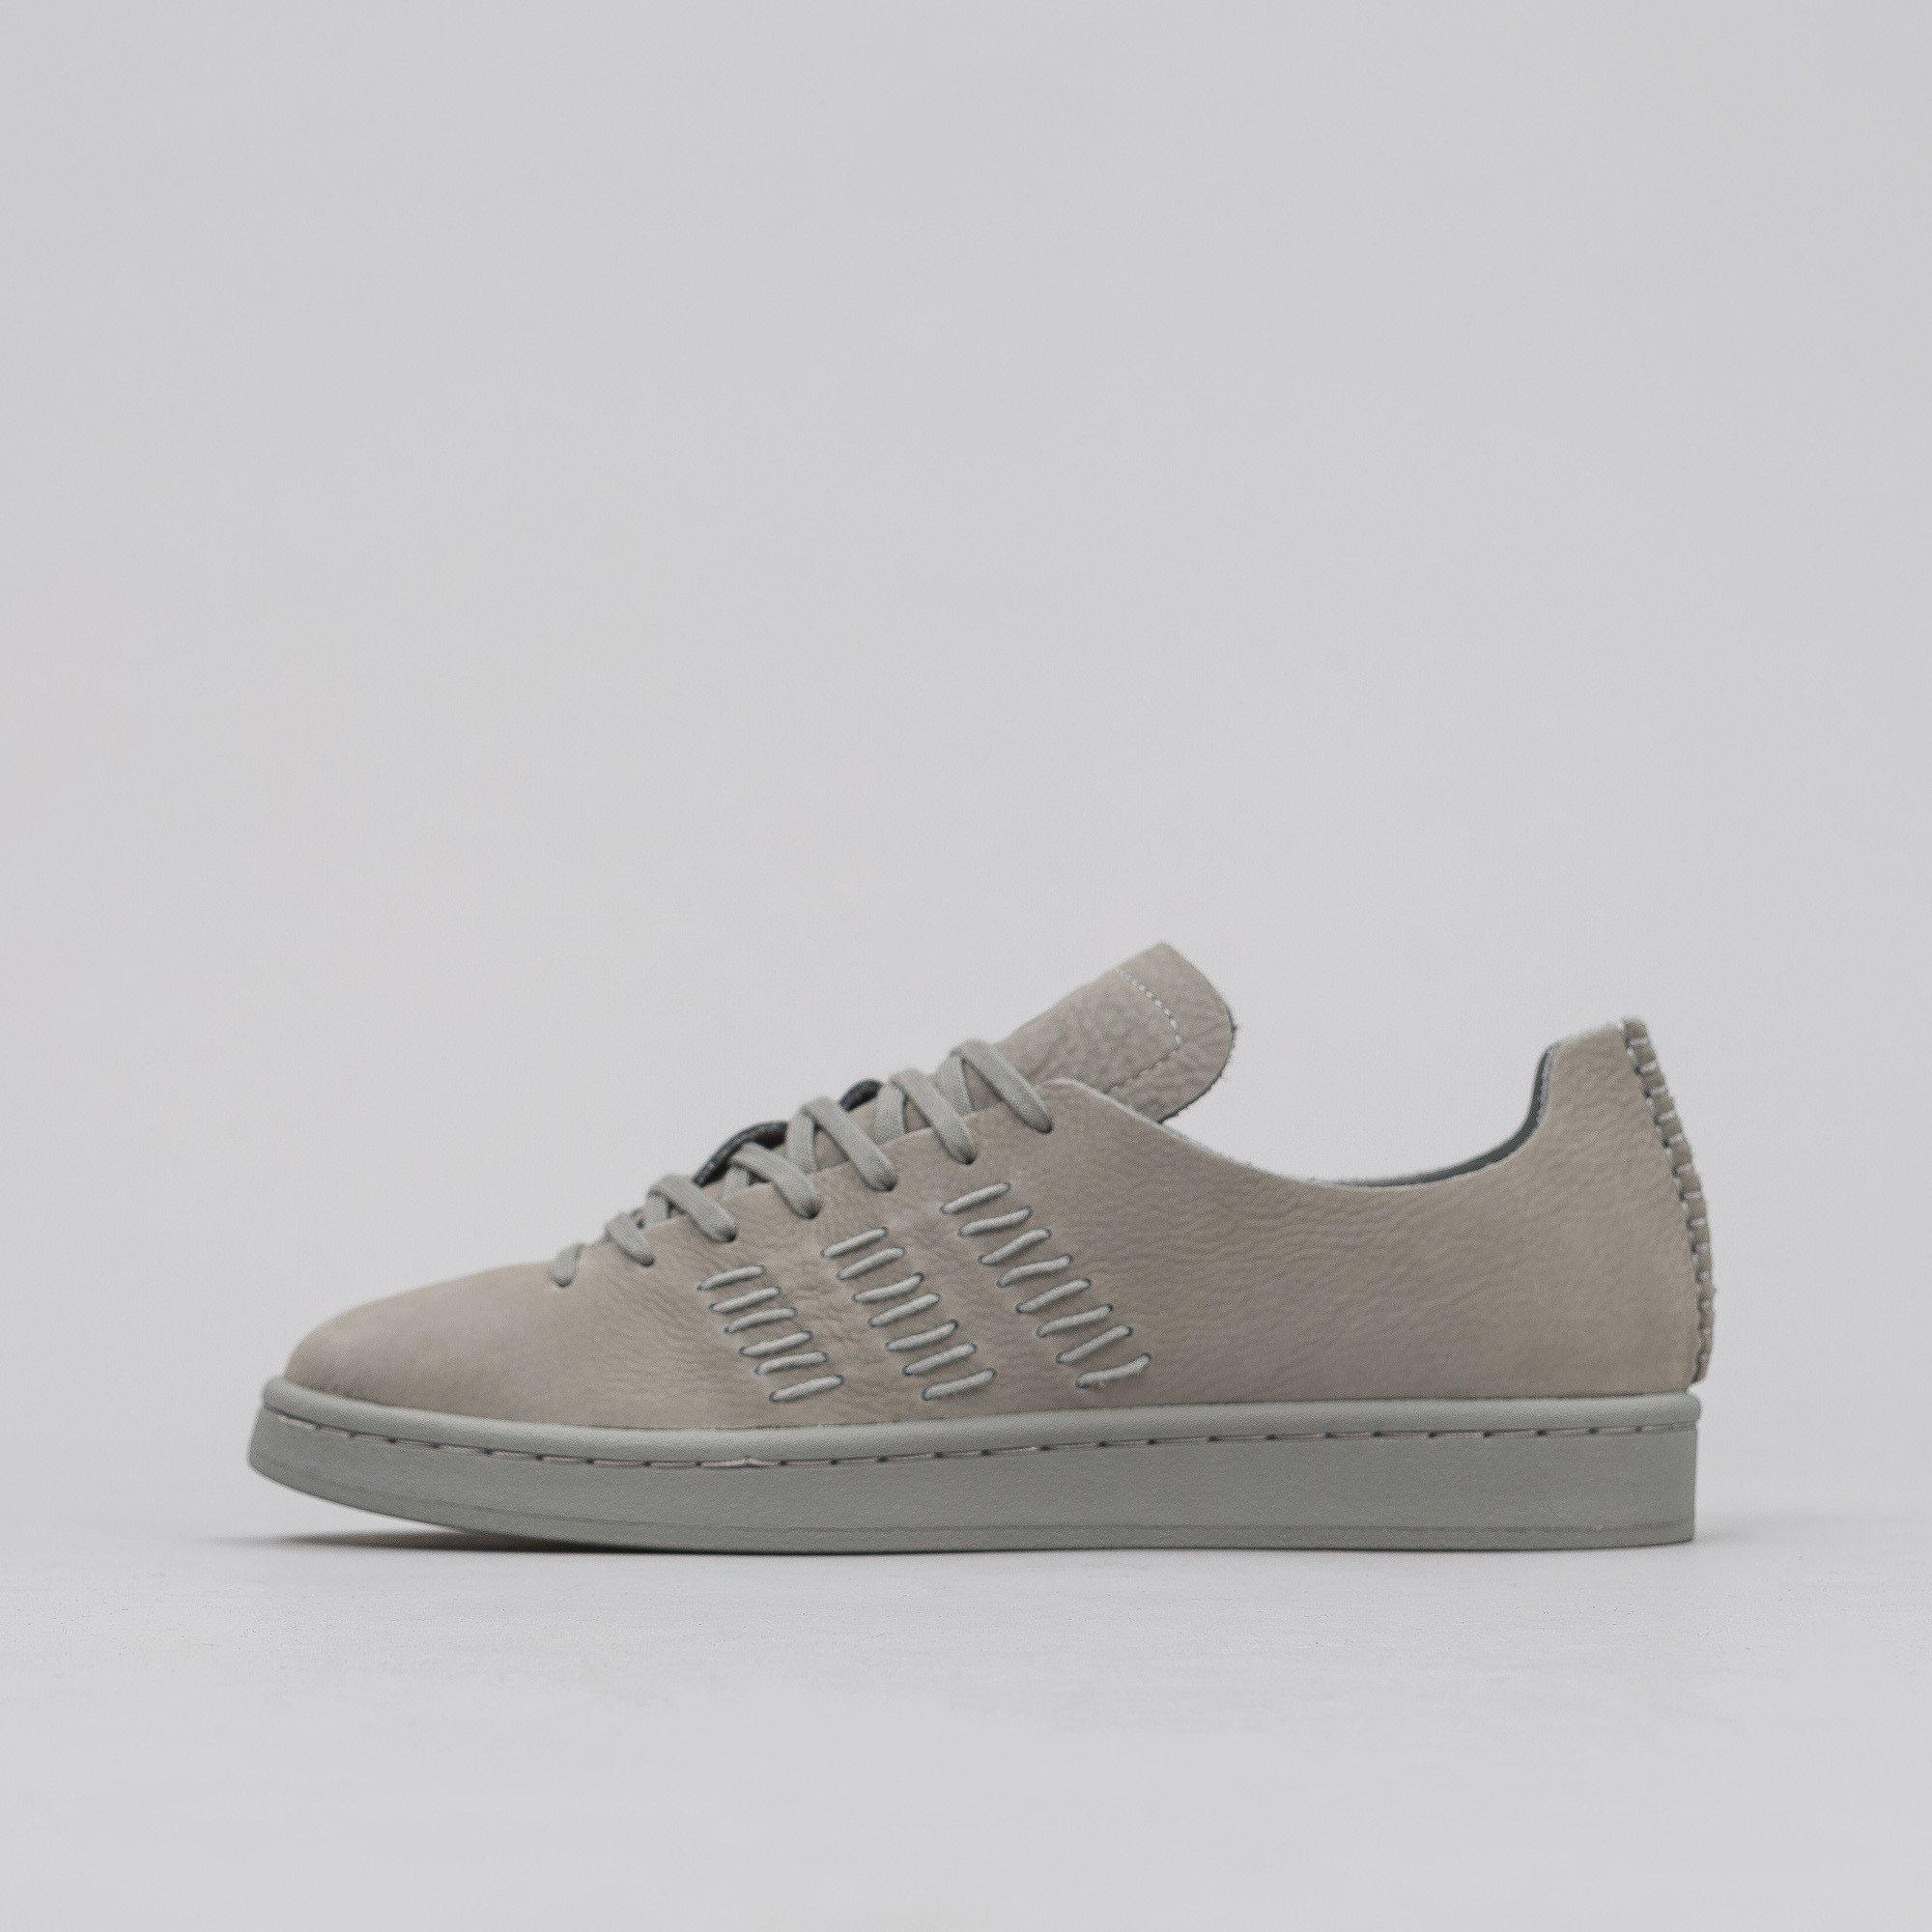 6e6a1f18133 Lyst - adidas X Wings+horns Campus In Grey in Gray for Men